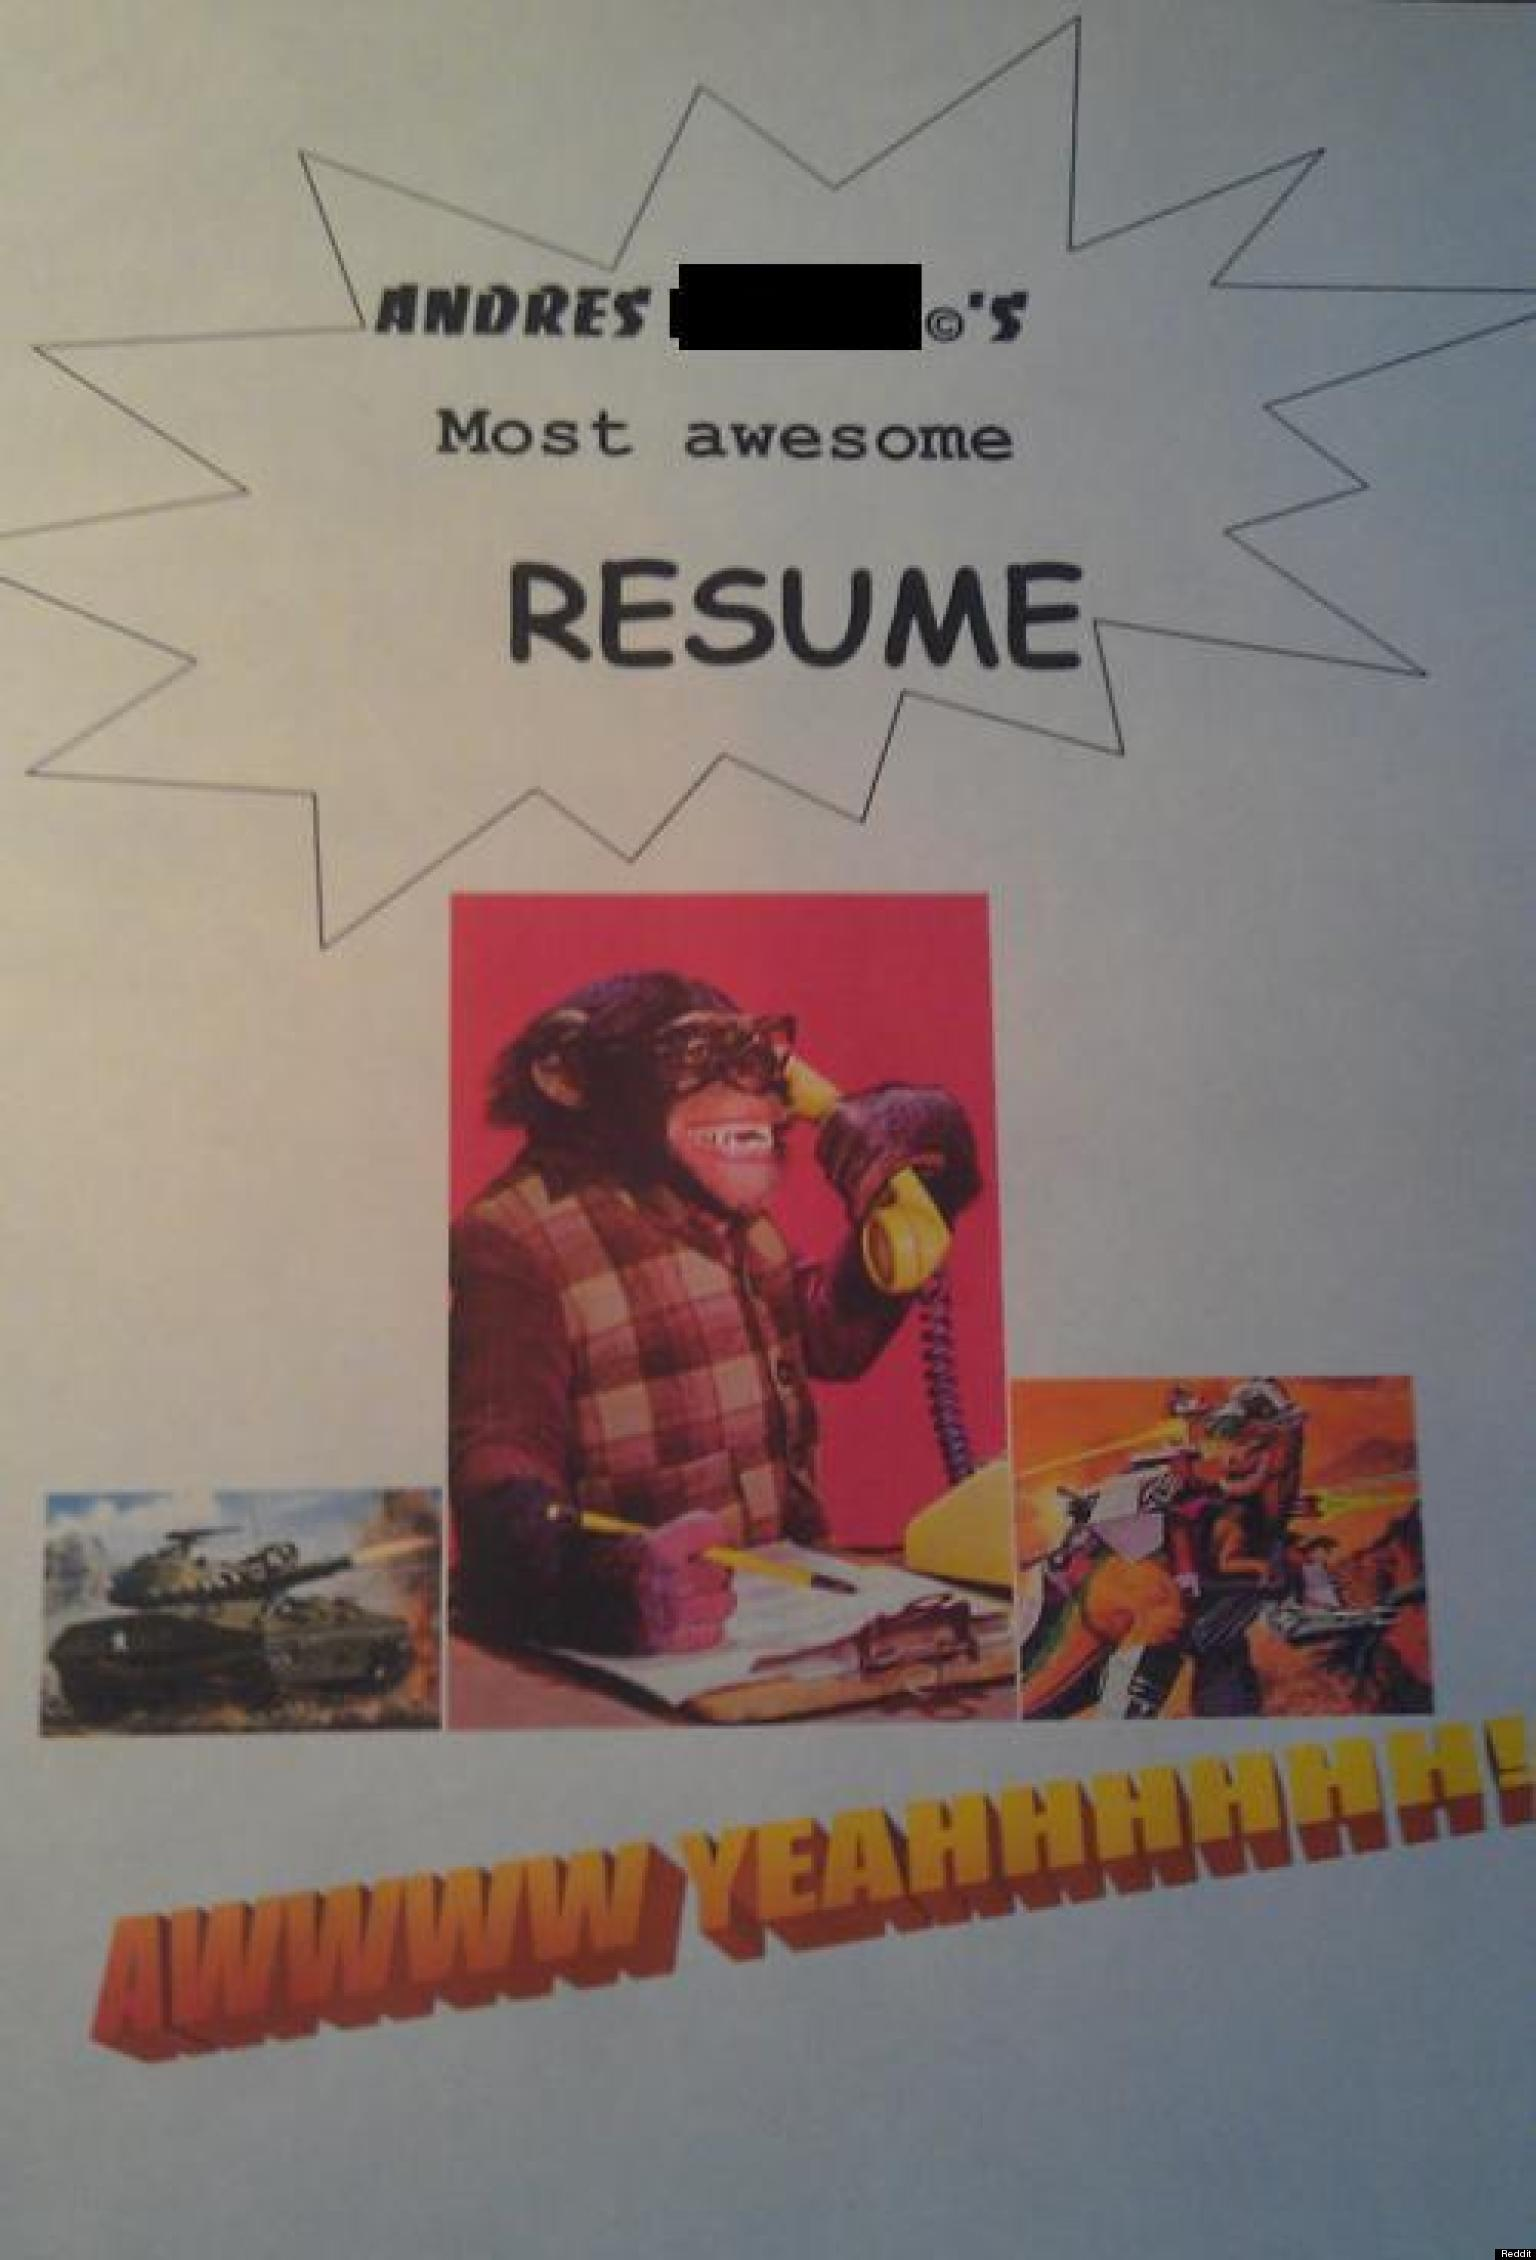 funny resume mistakes sample cv resume funny resume mistakes biggest resume mistakes 21 funny resum233 s and cover letters photos